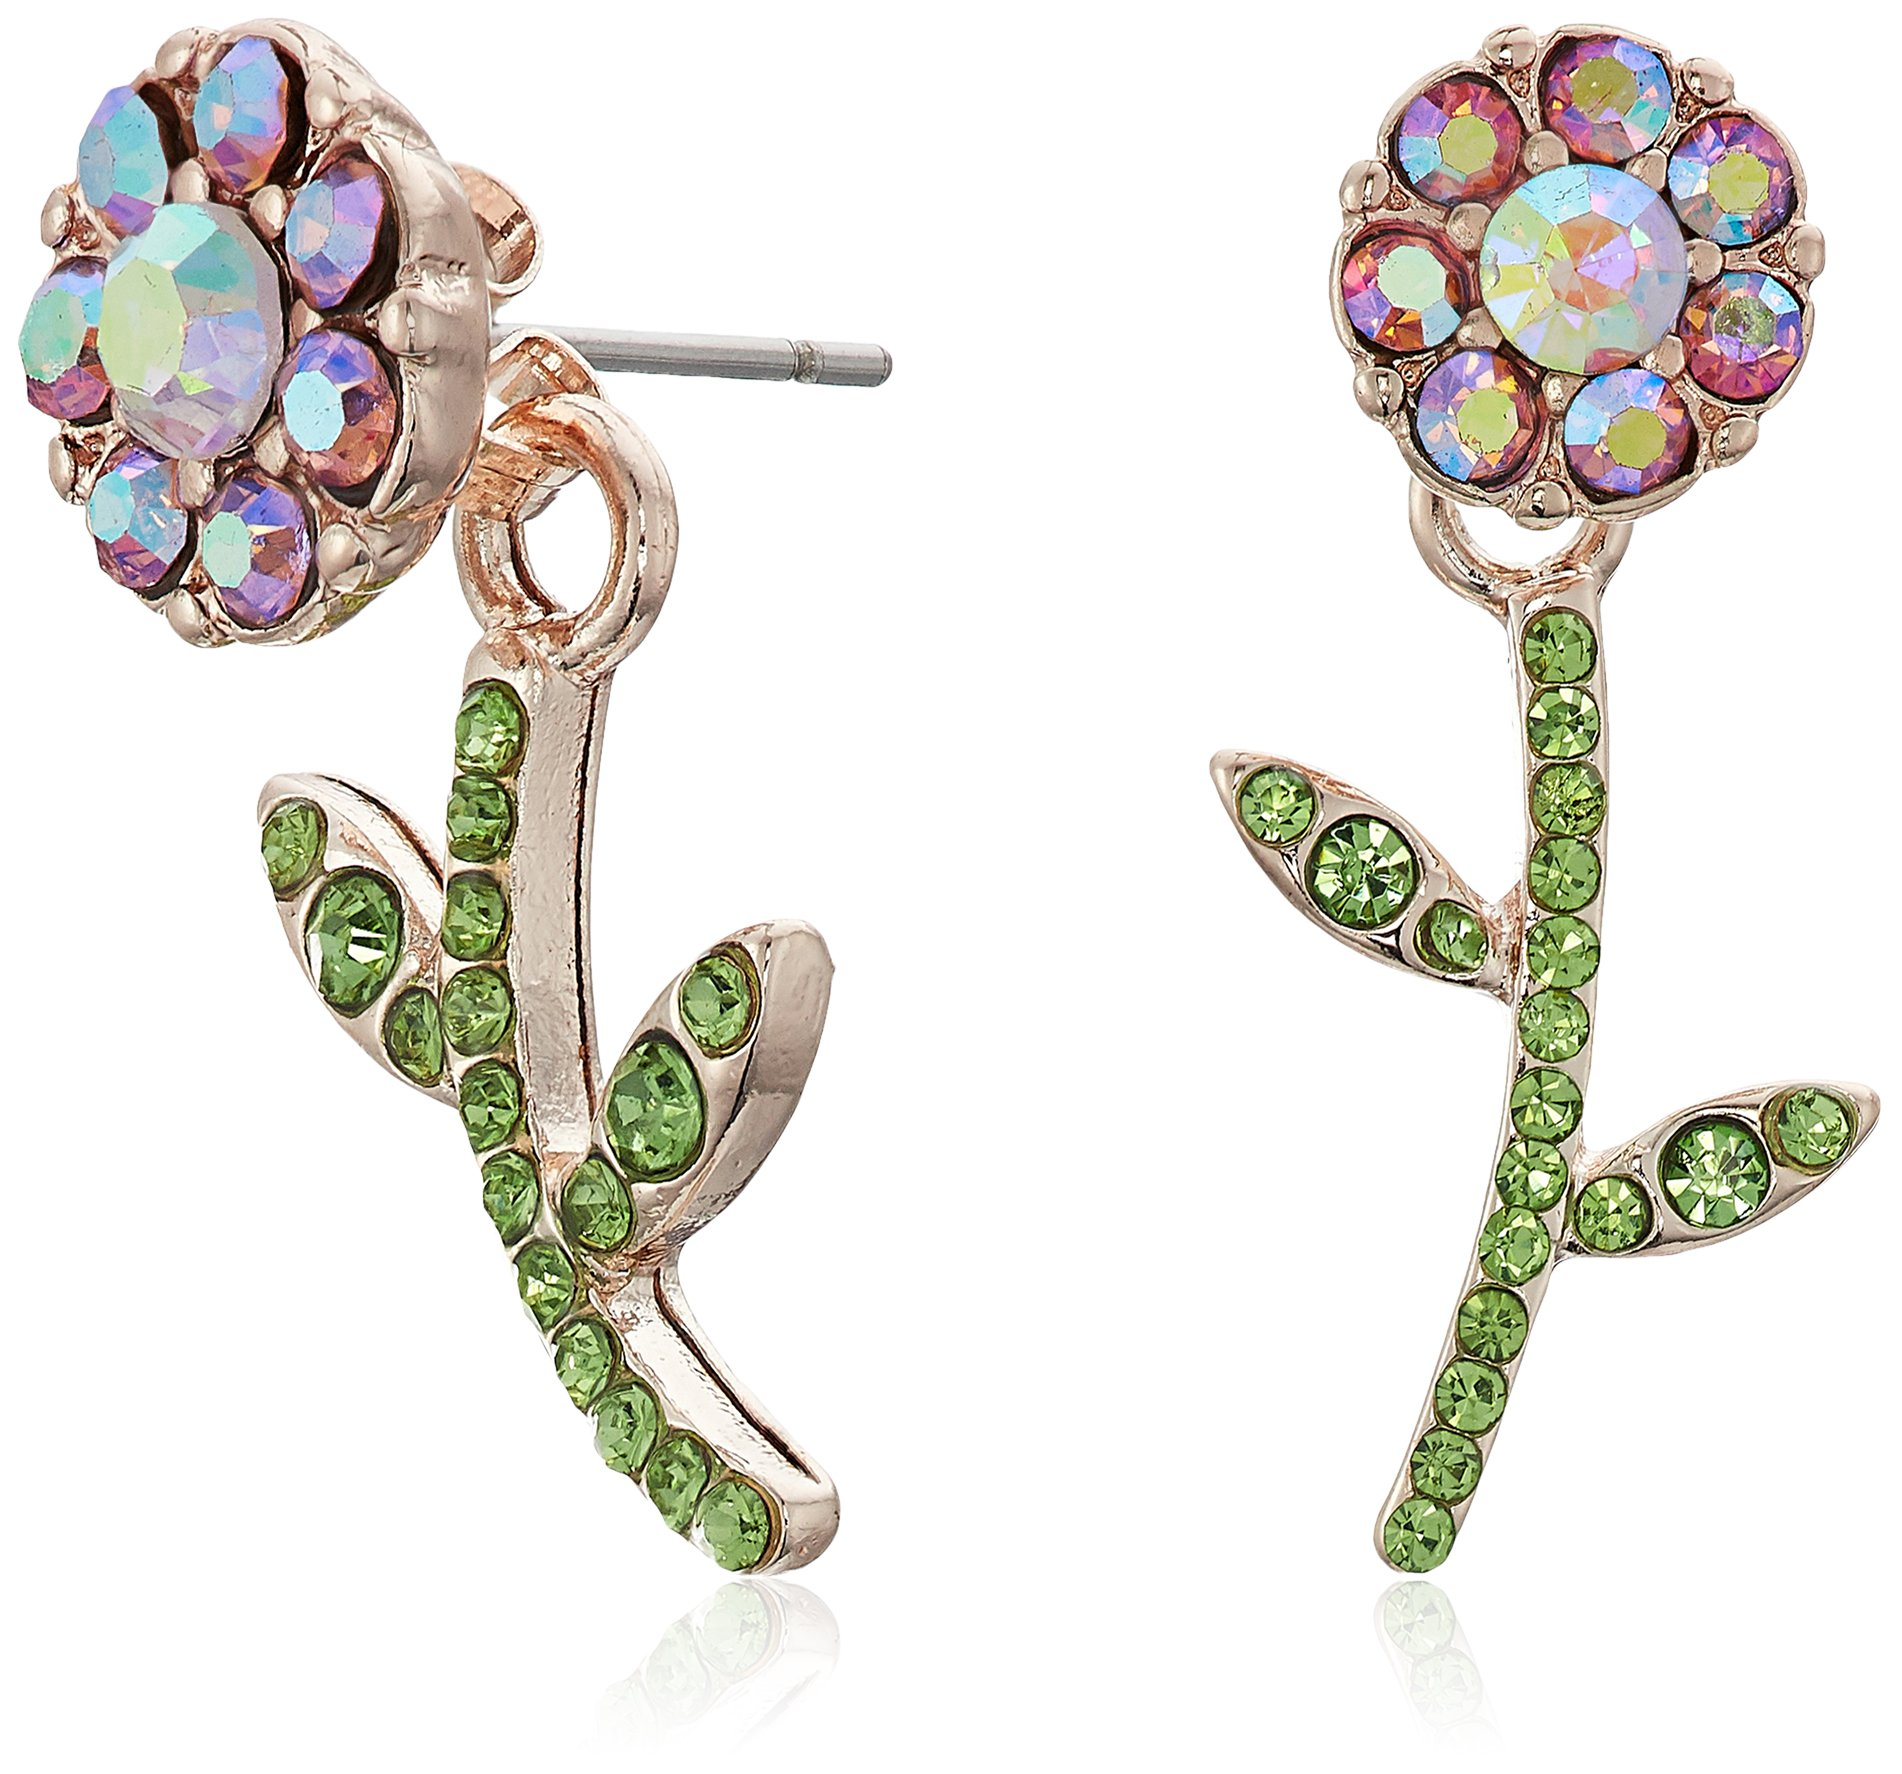 Betsey Johnson Flower Front Back Earrings-Jackets, Pink, One Size by Betsey Johnson